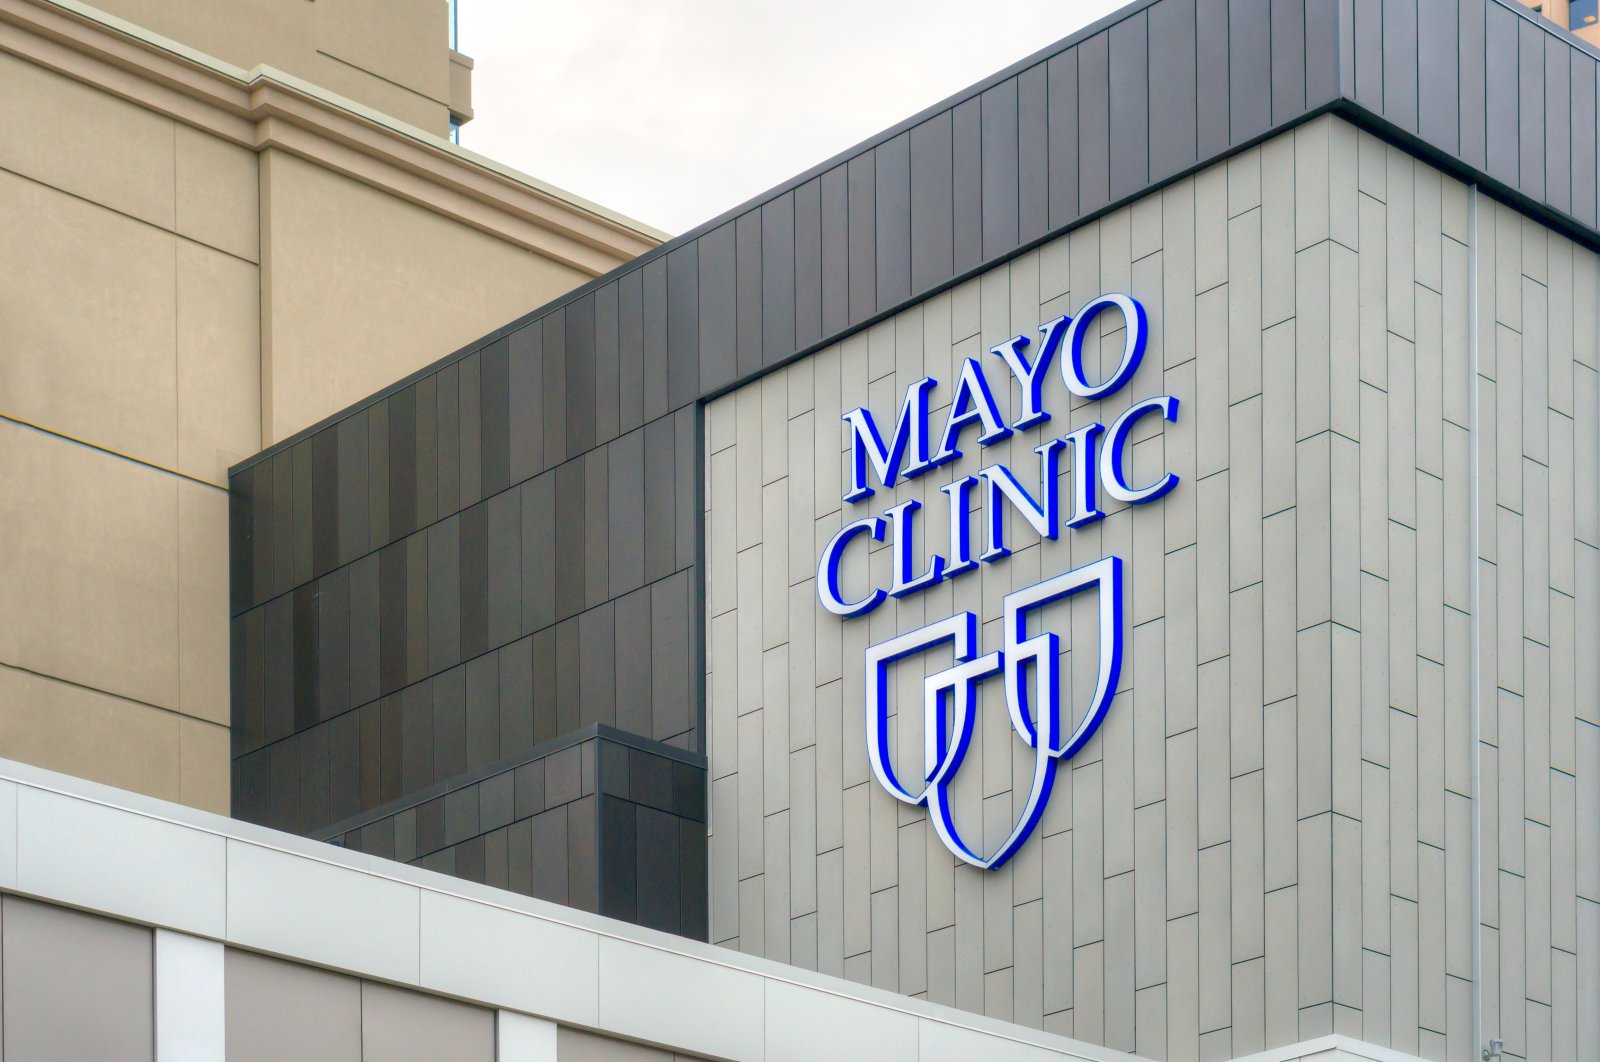 The Mayo Clinic entrance and sign, in Rochester, Minnesota, U.S., May 23, 2016. (Shutterstock Photo)